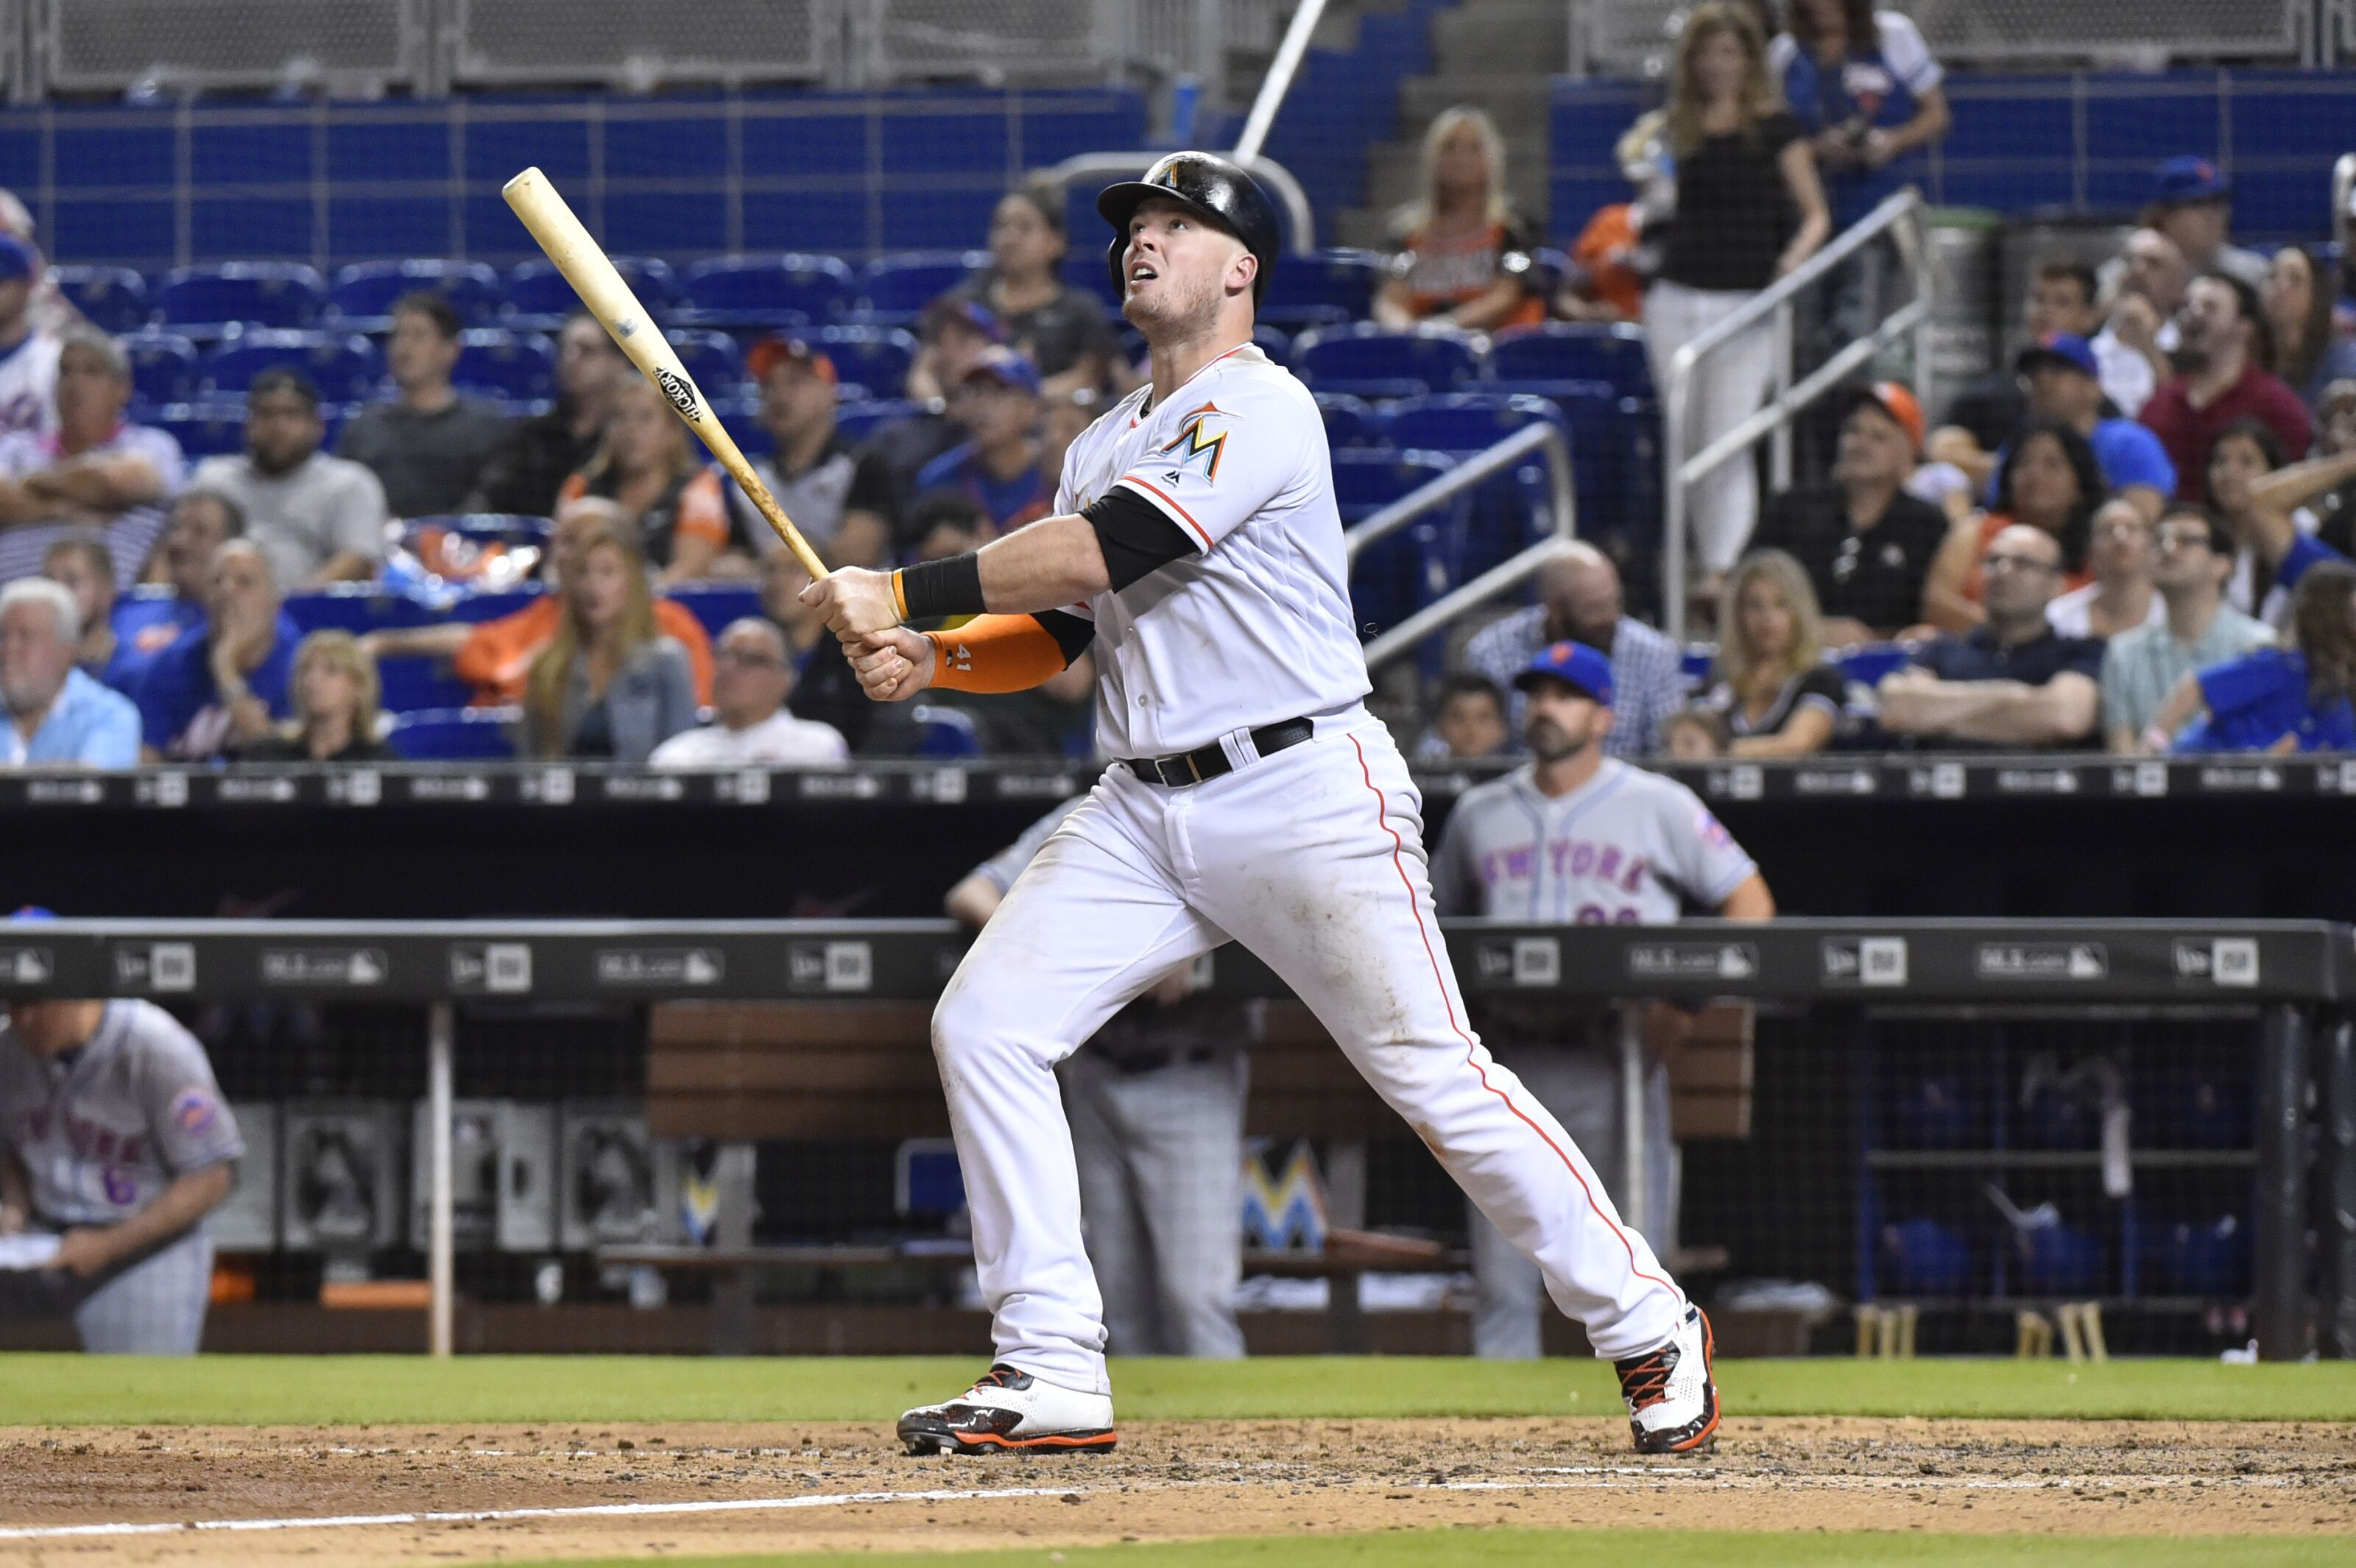 Marlins trade justin bour to philadelphia for pitching prospect malvernweather Images